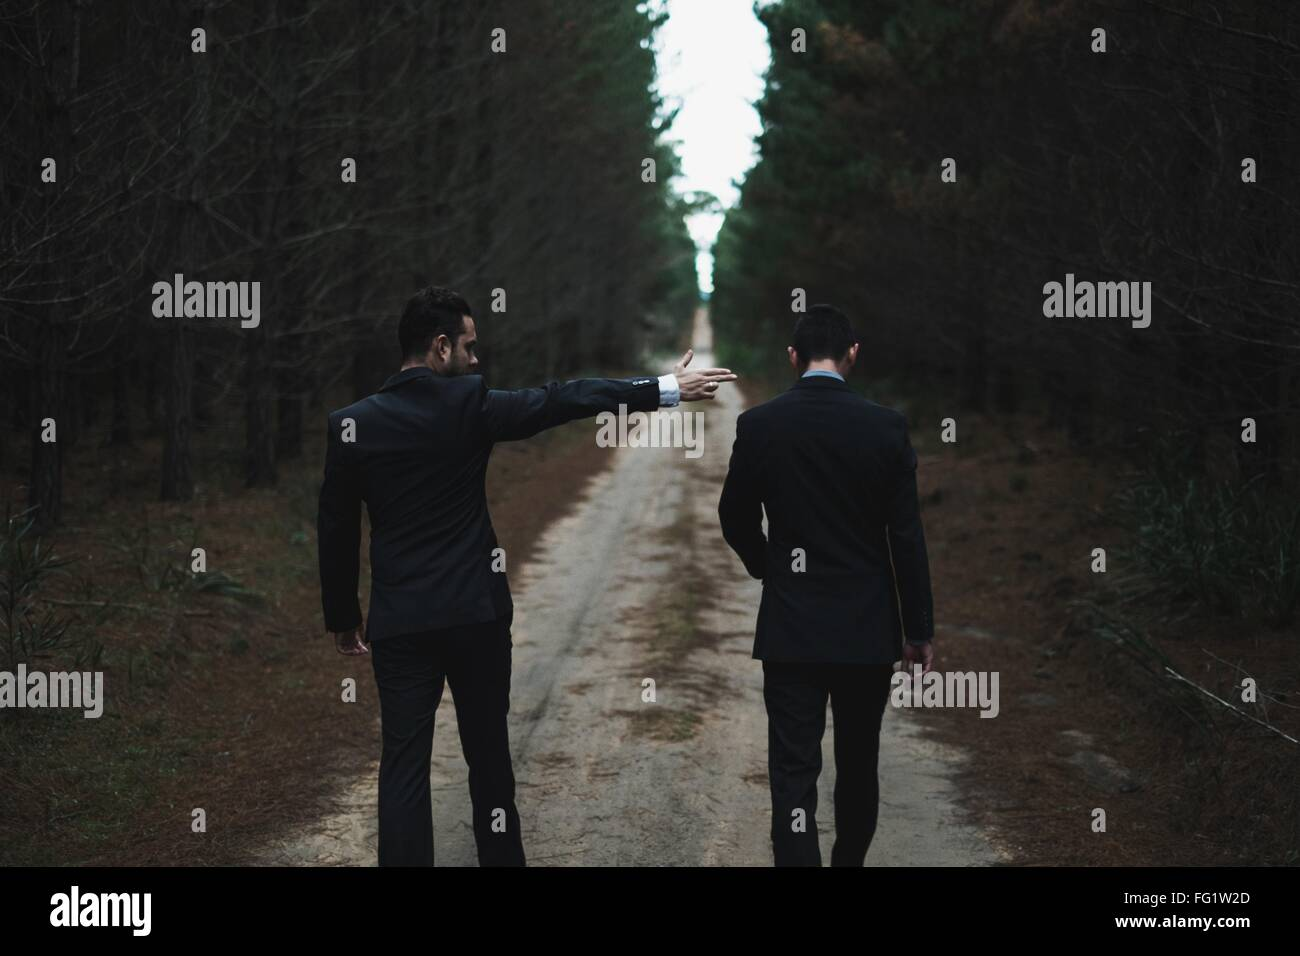 Man Pointing Fingers At Other Man - Stock Image